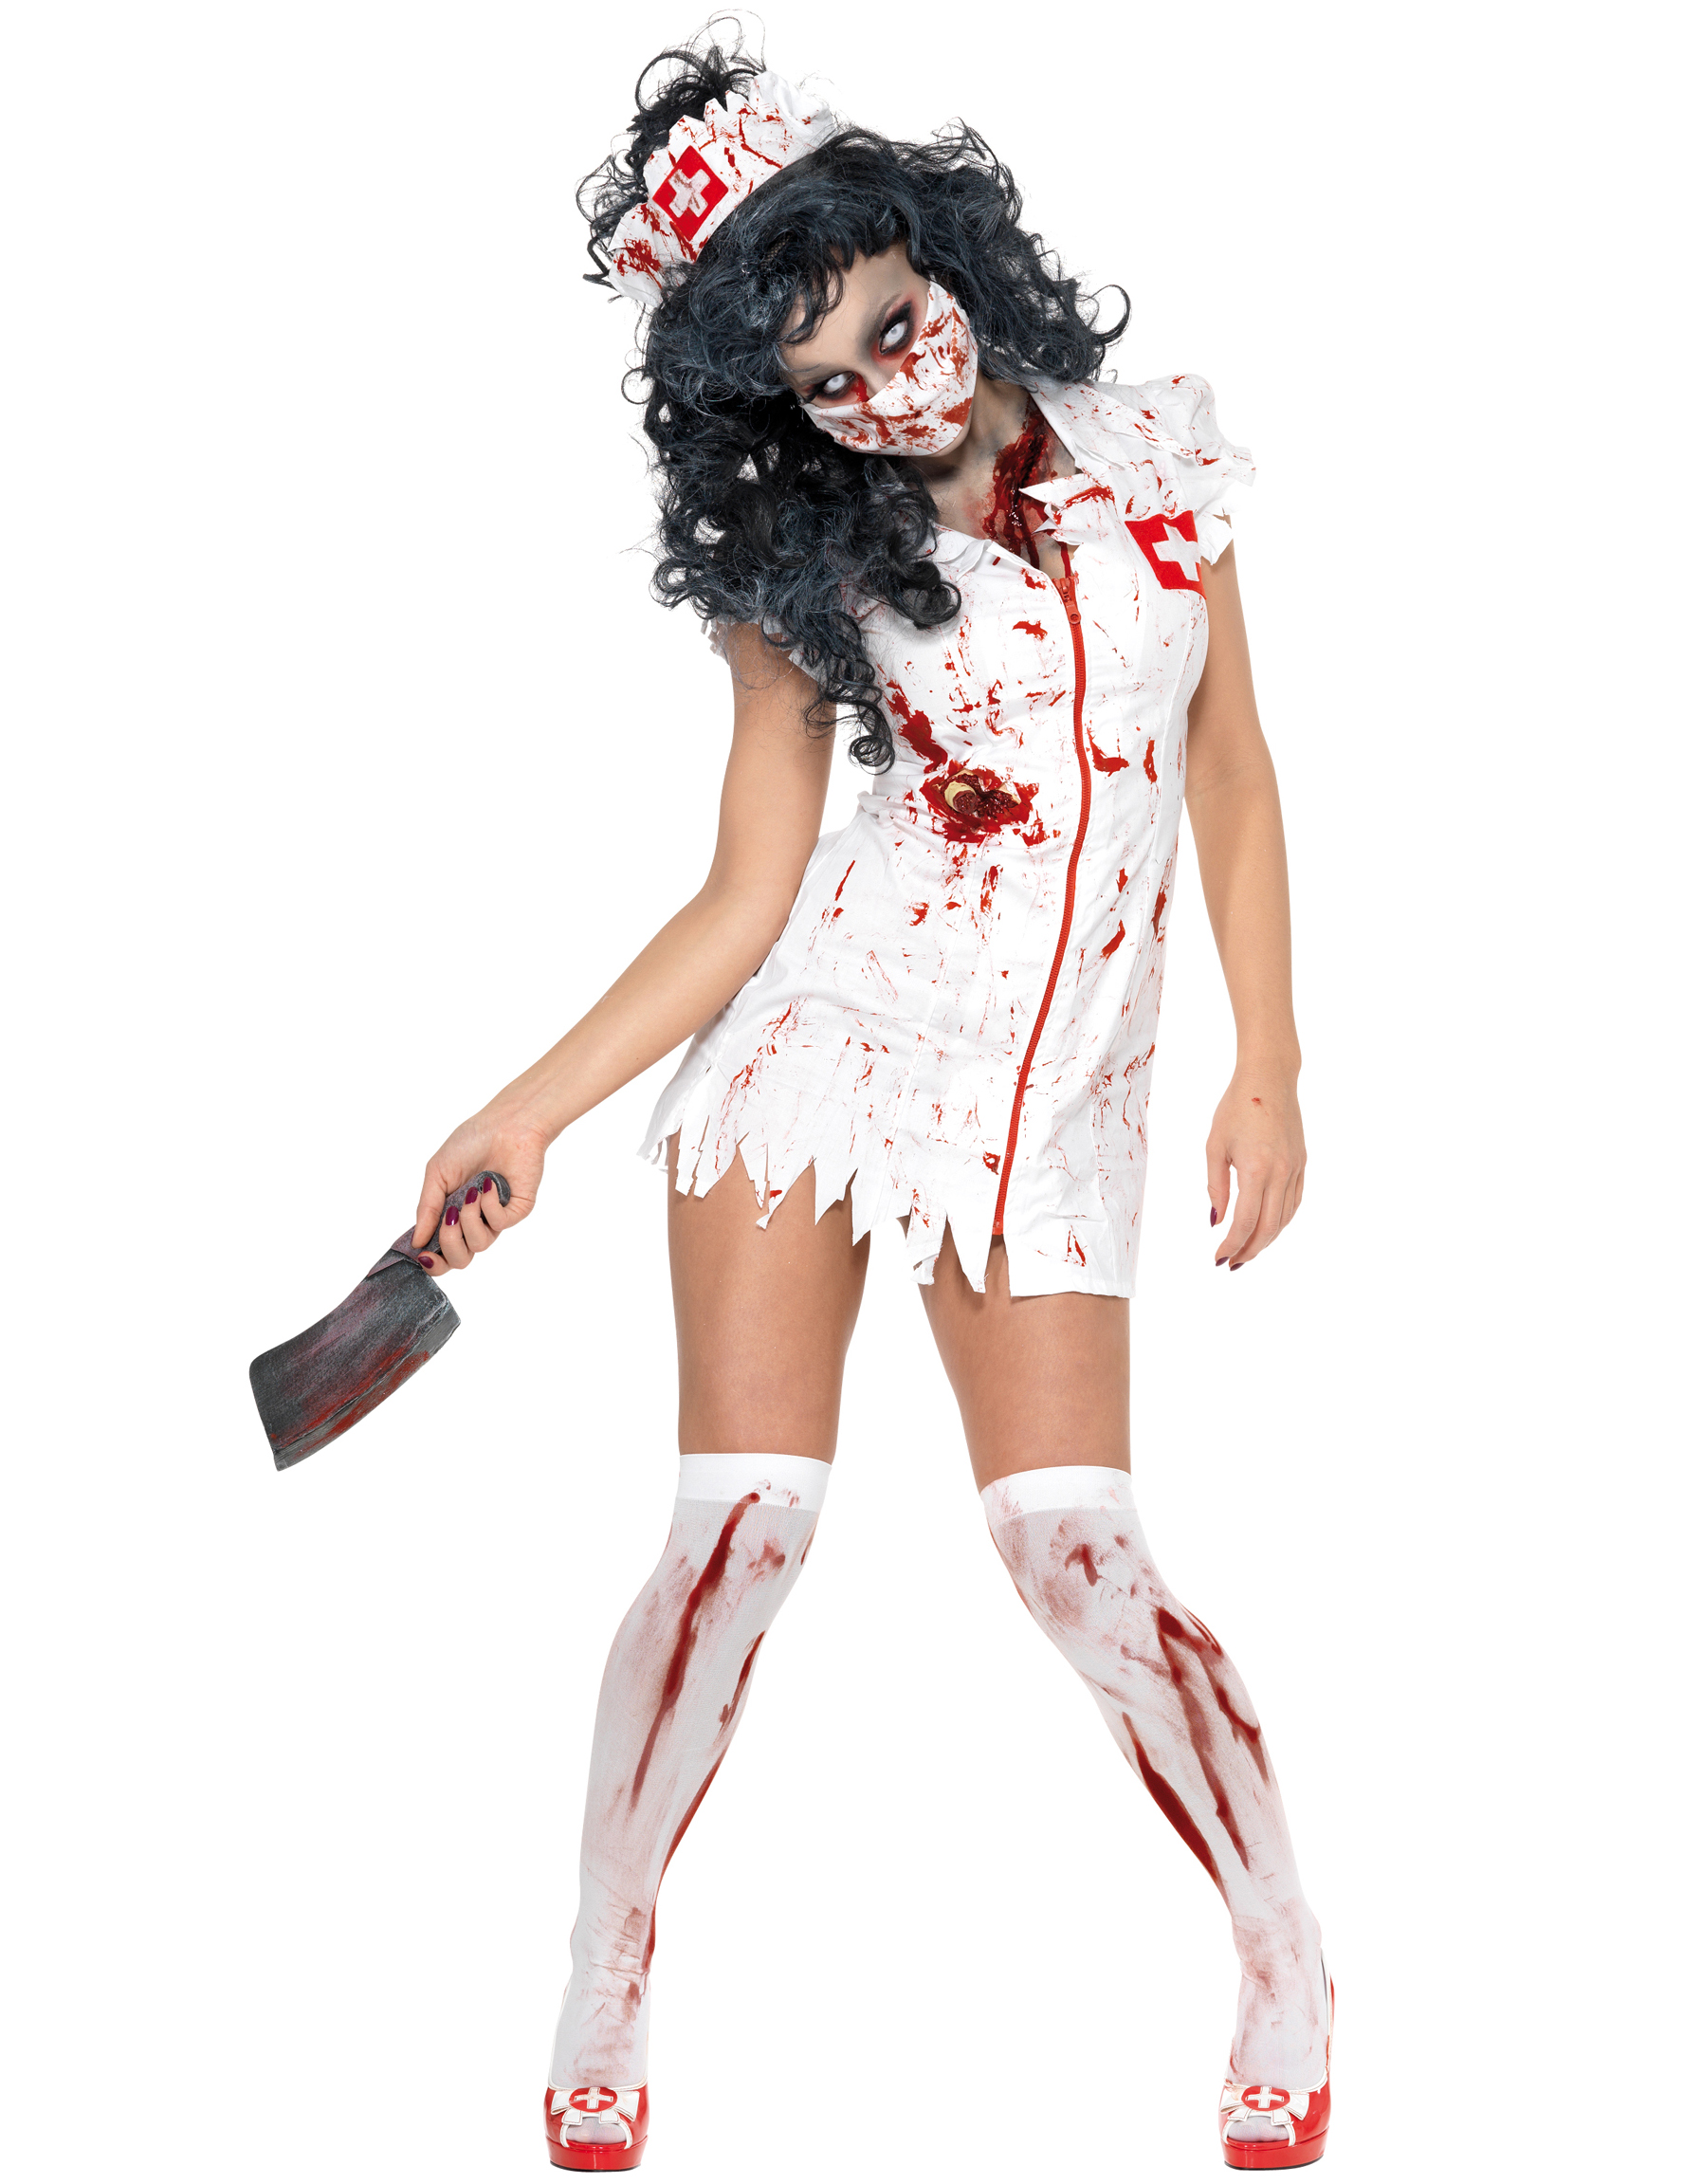 4448cd0b51 Travestimento Halloween infermiera zombie - Vegaoo.it